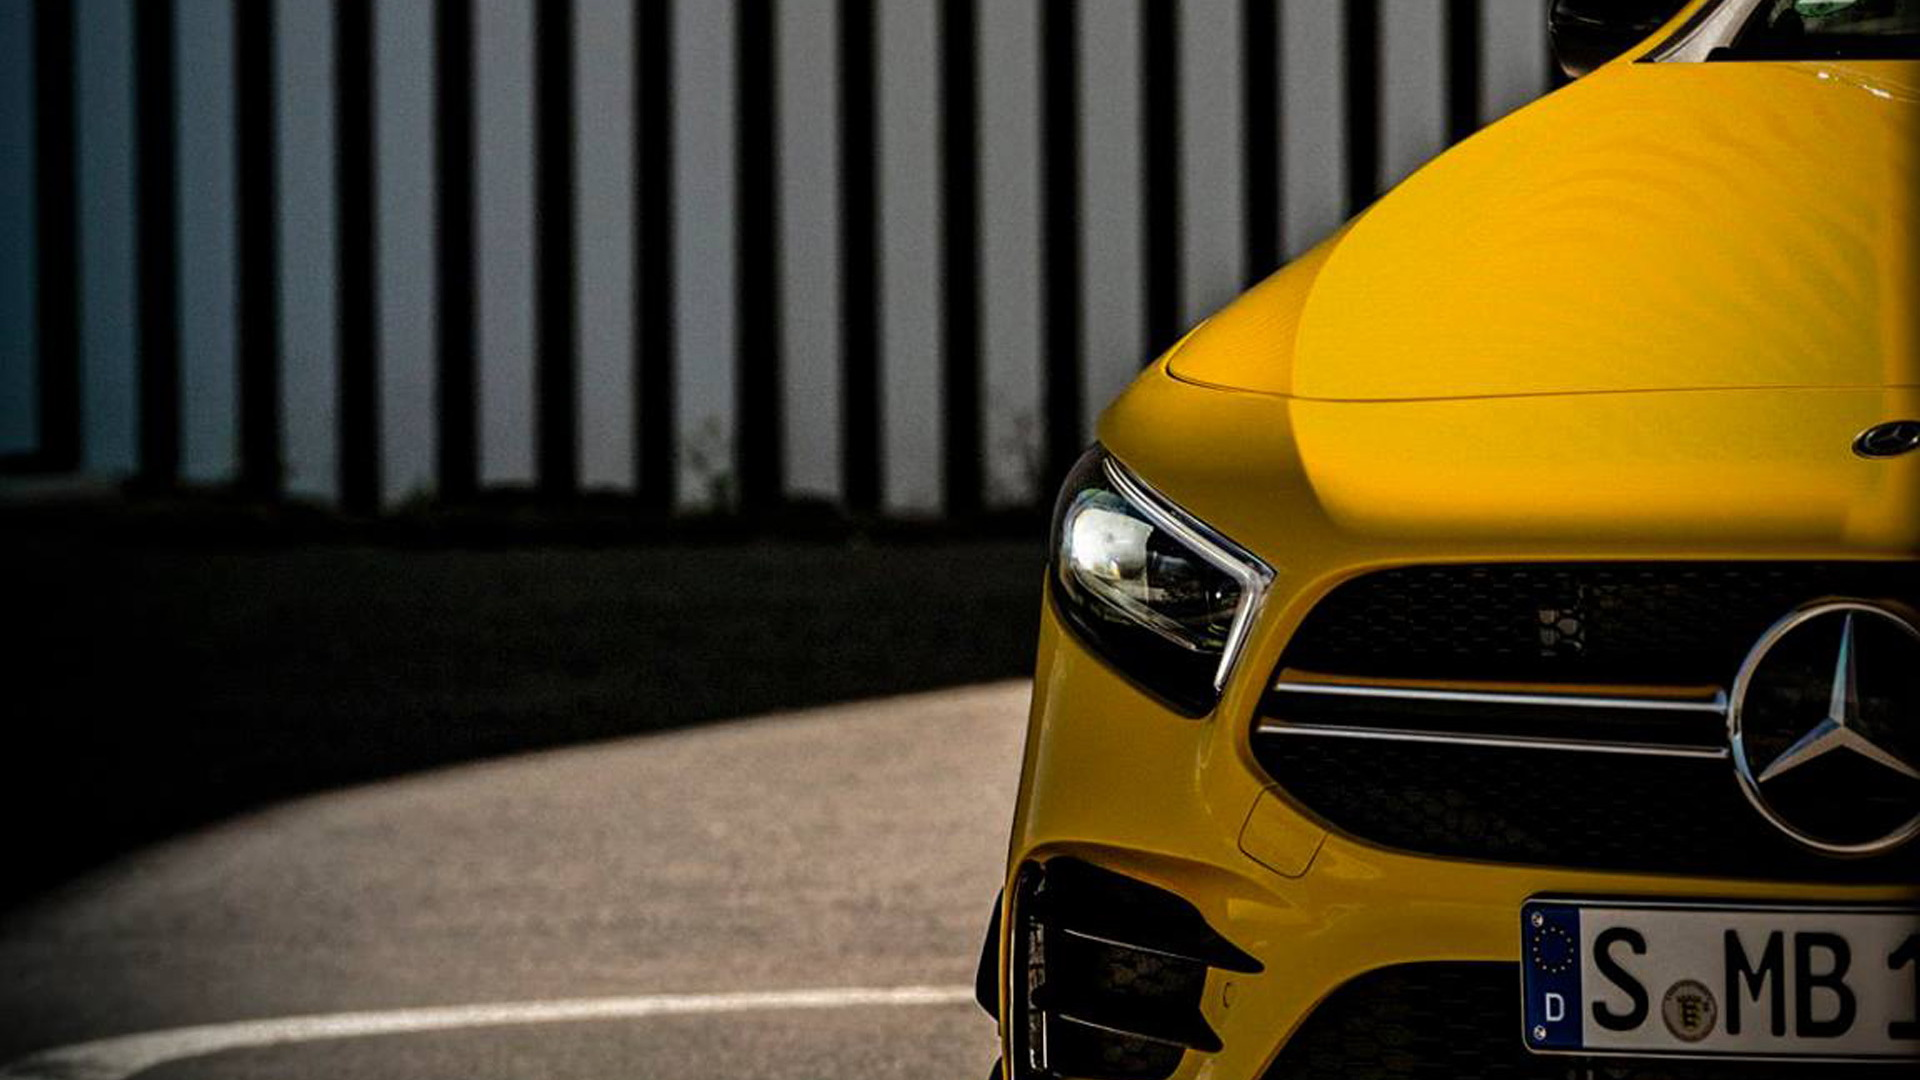 Teaser for 2019 Mercedes-AMG A35 hatchback